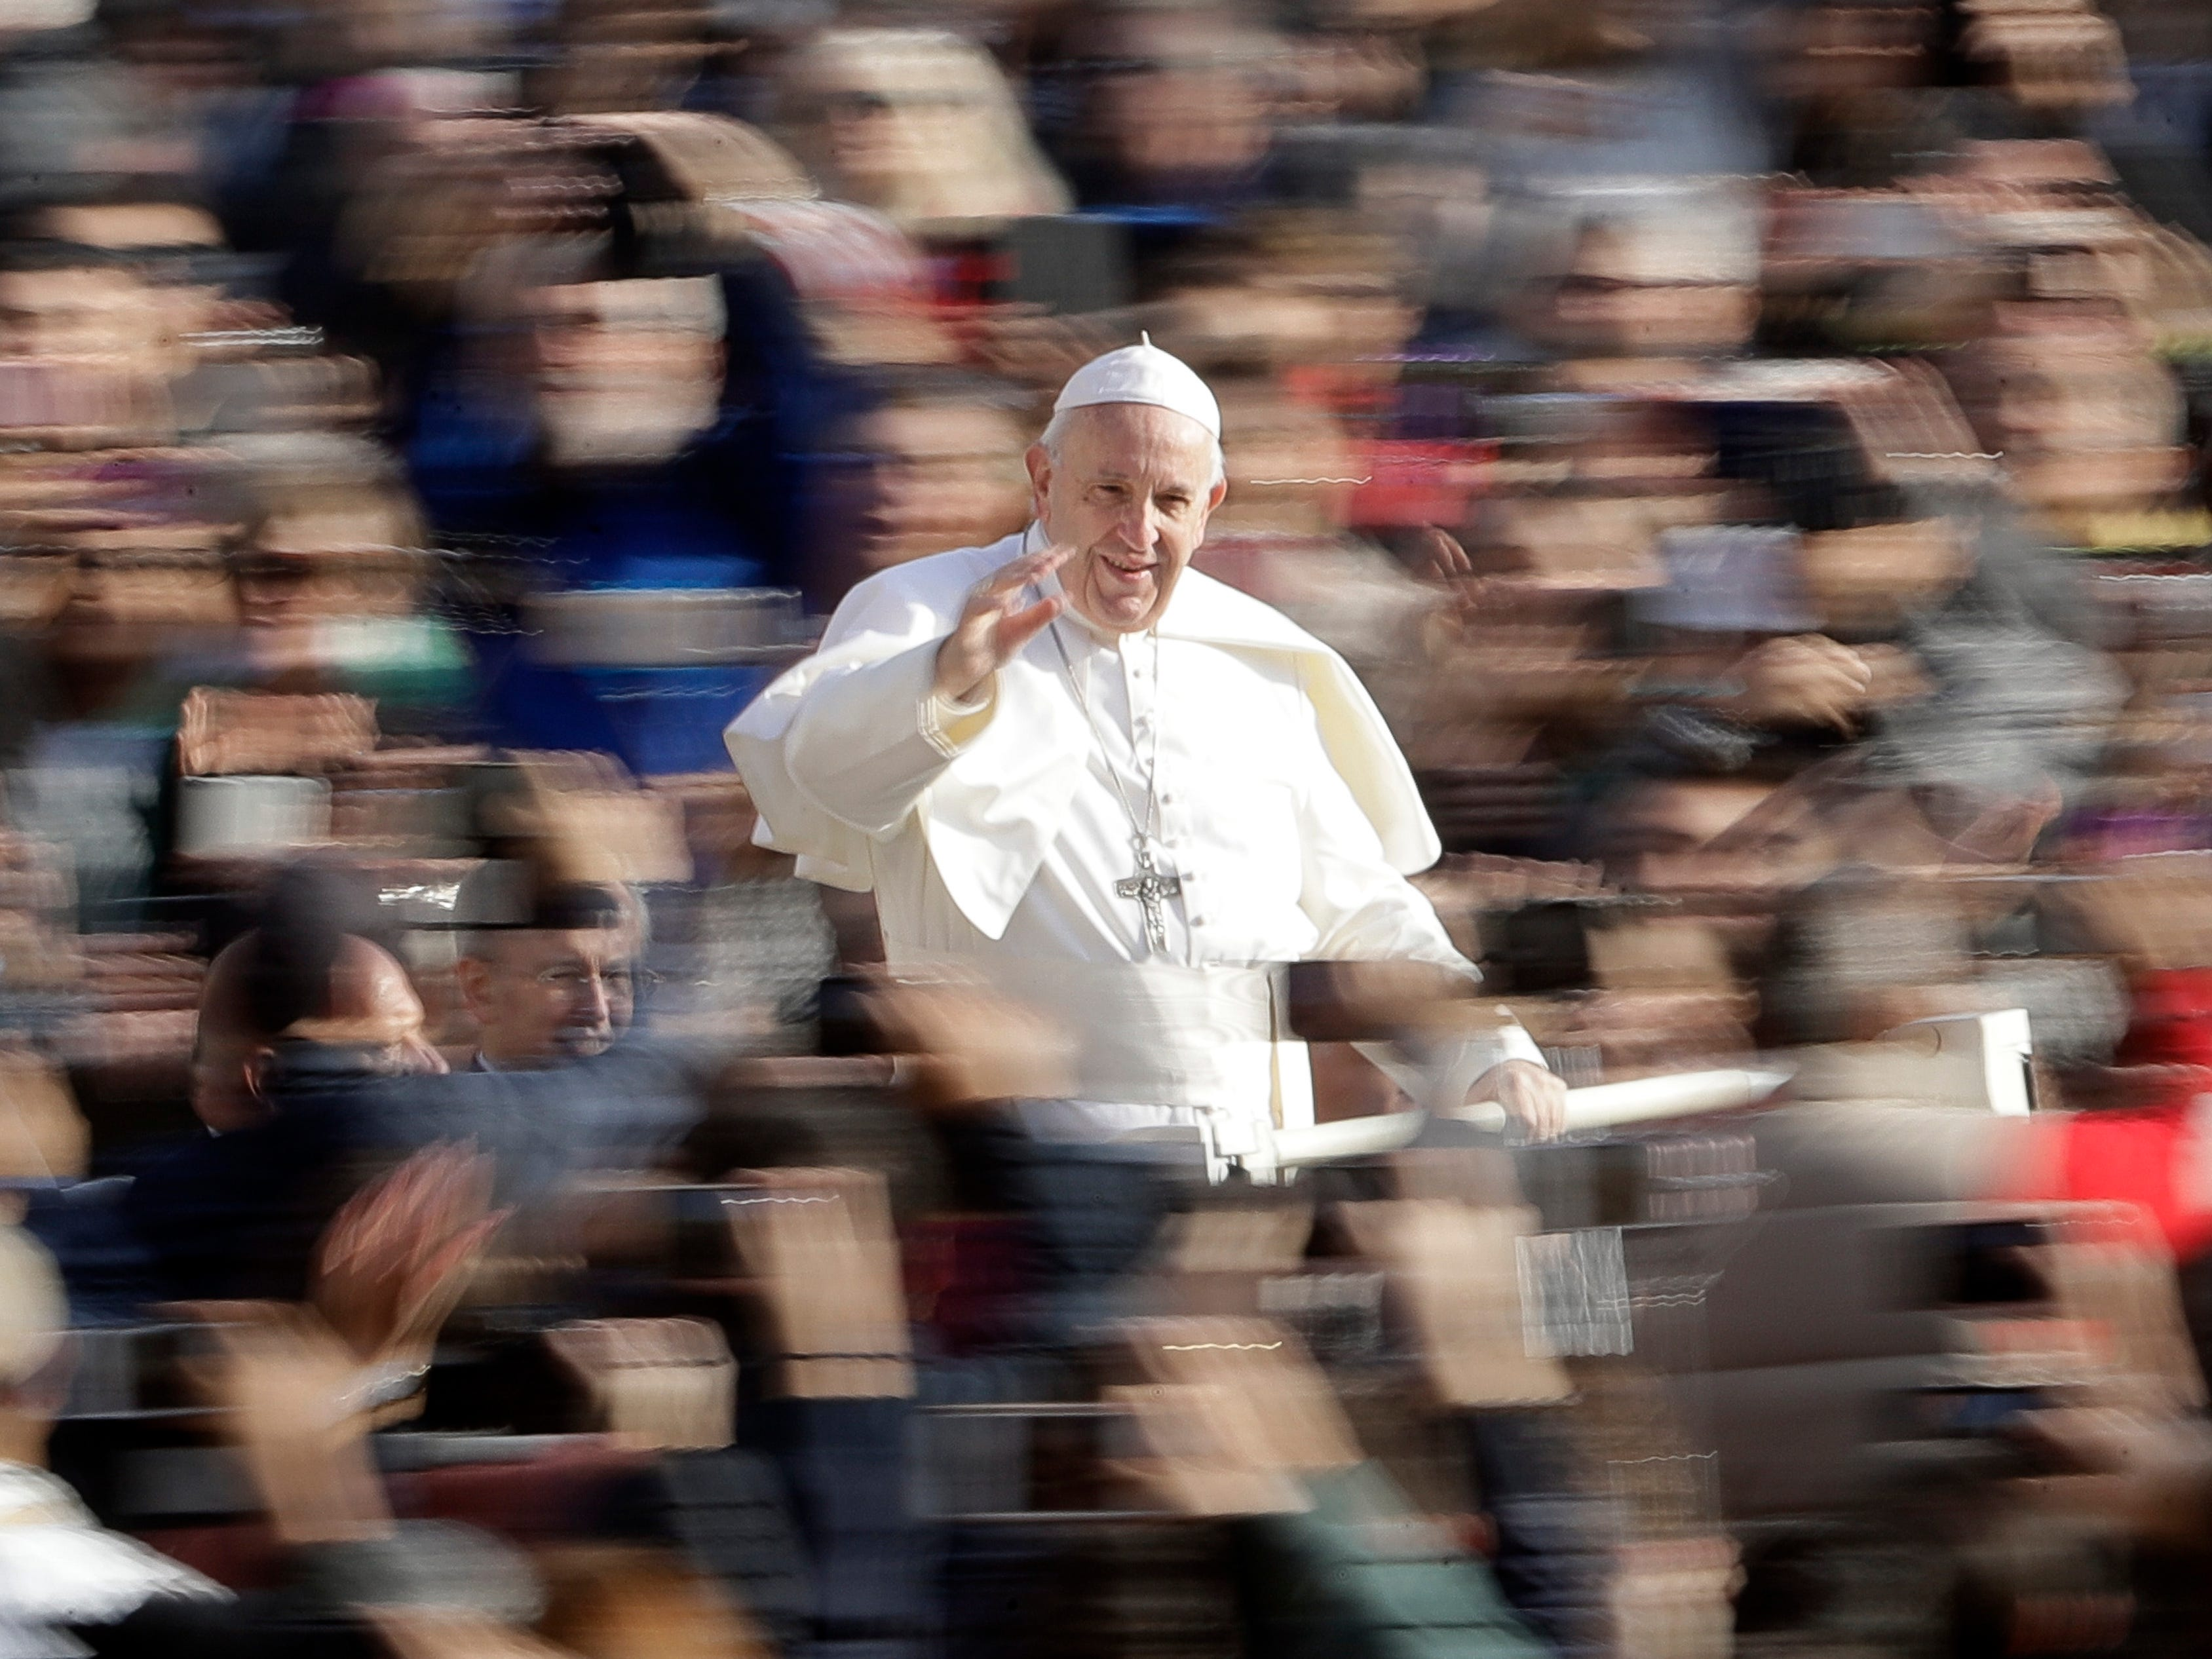 Pope Francis arrives for his weekly general audience, in St. Peter's Square, at the Vatican, Wednesday, Nov. 14, 2018.